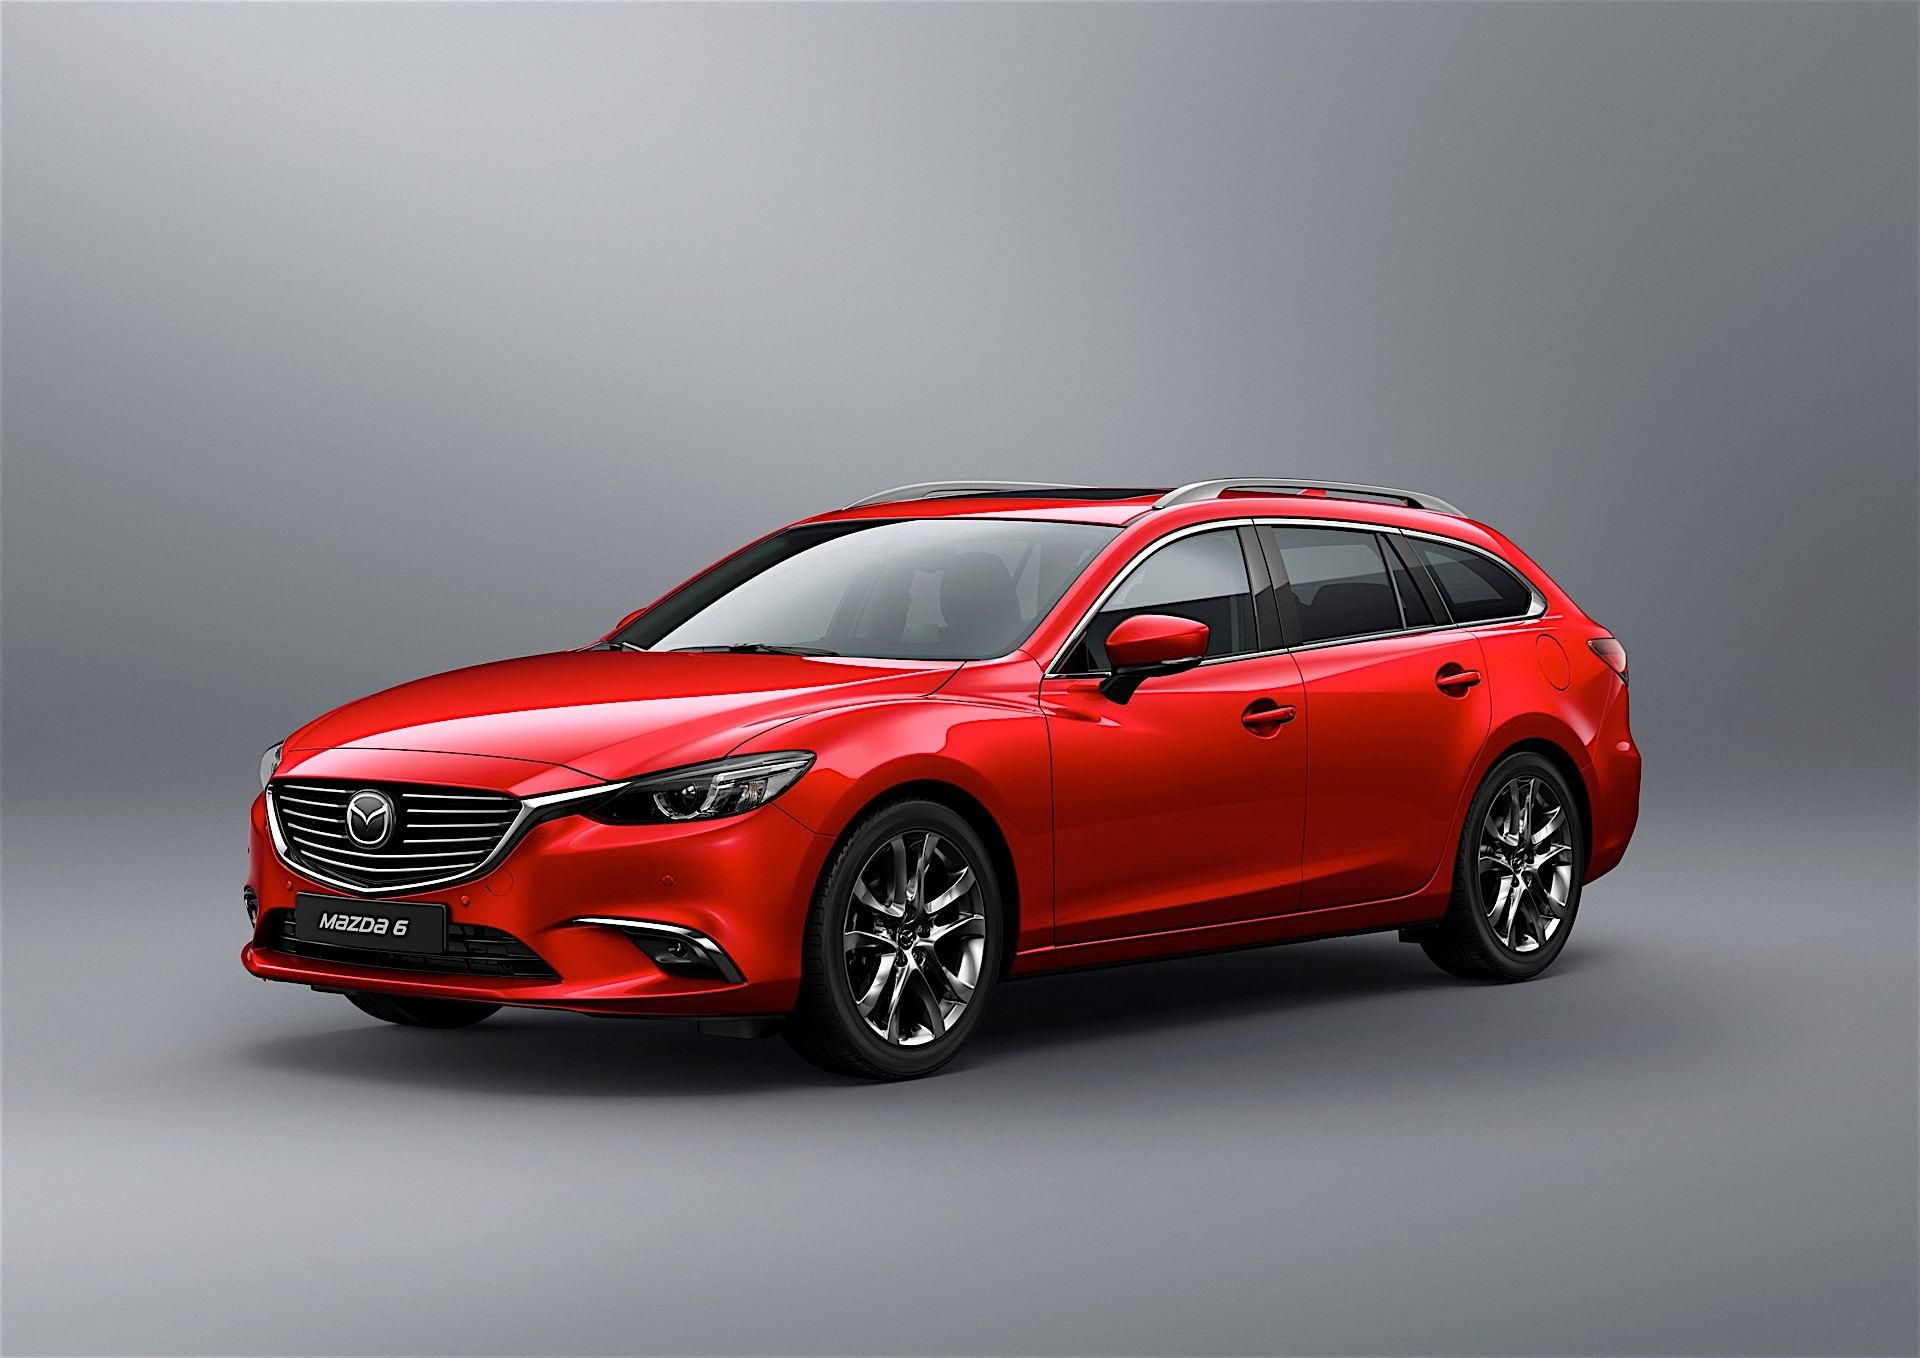 62 All New 2020 Mazda 6 First Drive